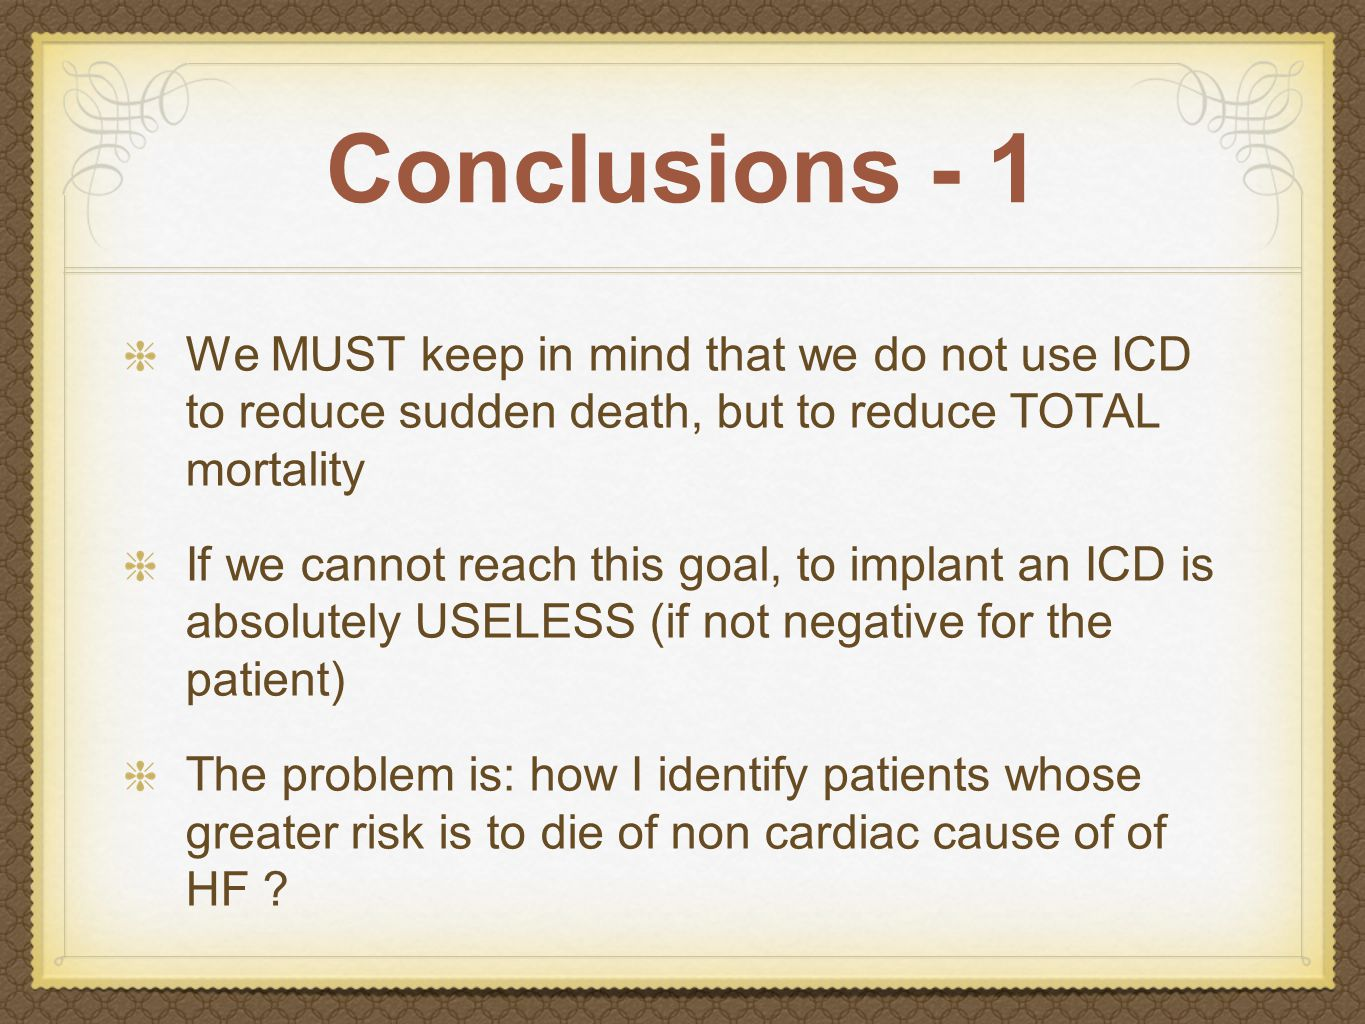 Conclusions - 1 We MUST keep in mind that we do not use ICD to reduce sudden death, but to reduce TOTAL mortality If we cannot reach this goal, to implant an ICD is absolutely USELESS (if not negative for the patient) The problem is: how I identify patients whose greater risk is to die of non cardiac cause of of HF